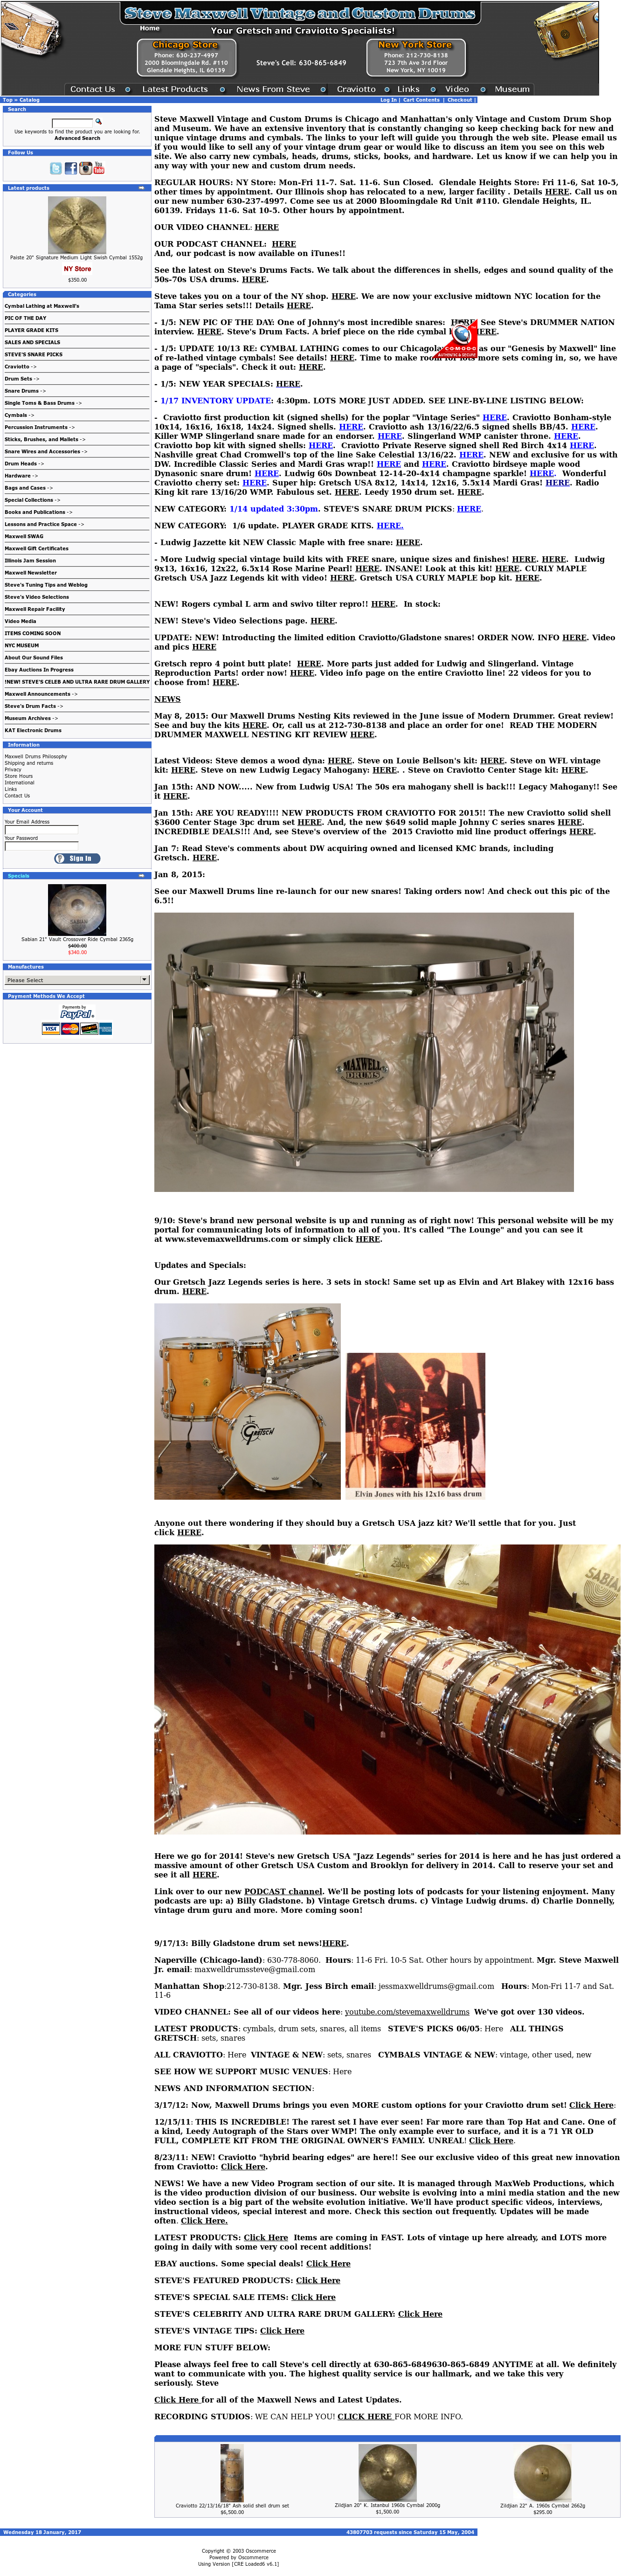 Steve Maxwell Drum Shop Competitors, Revenue and Employees - Owler